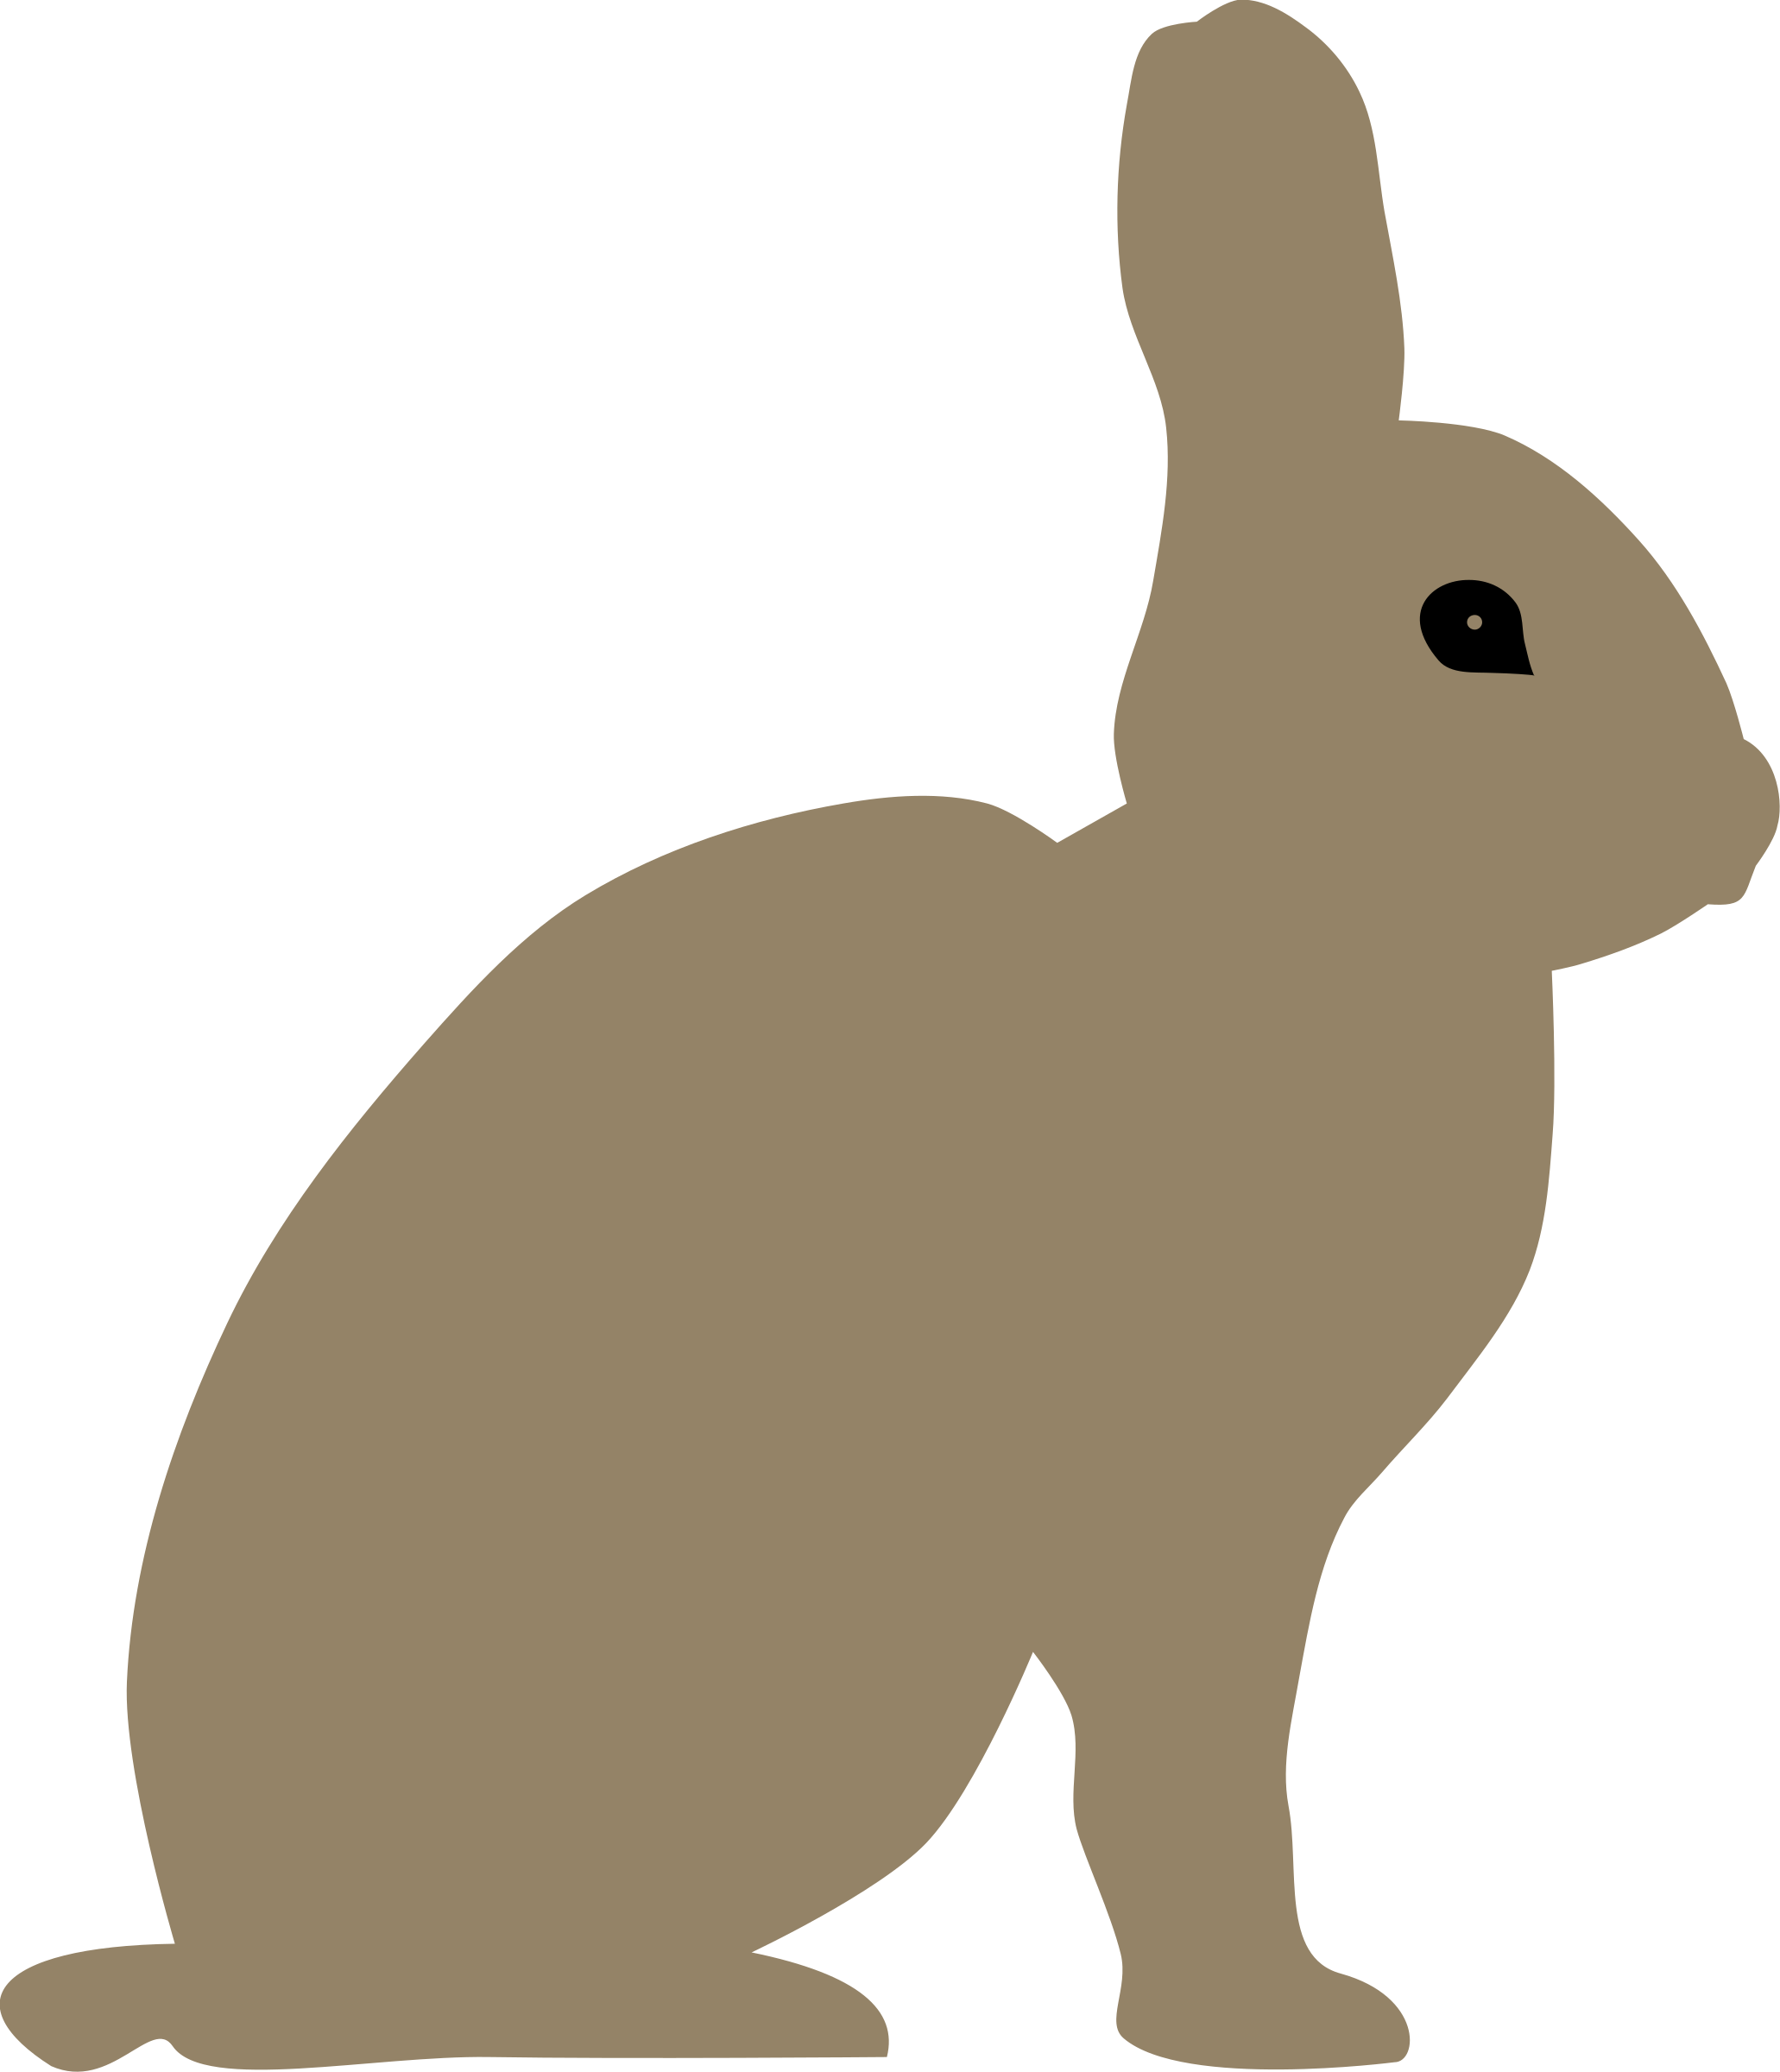 Rabbit by Rones by rones